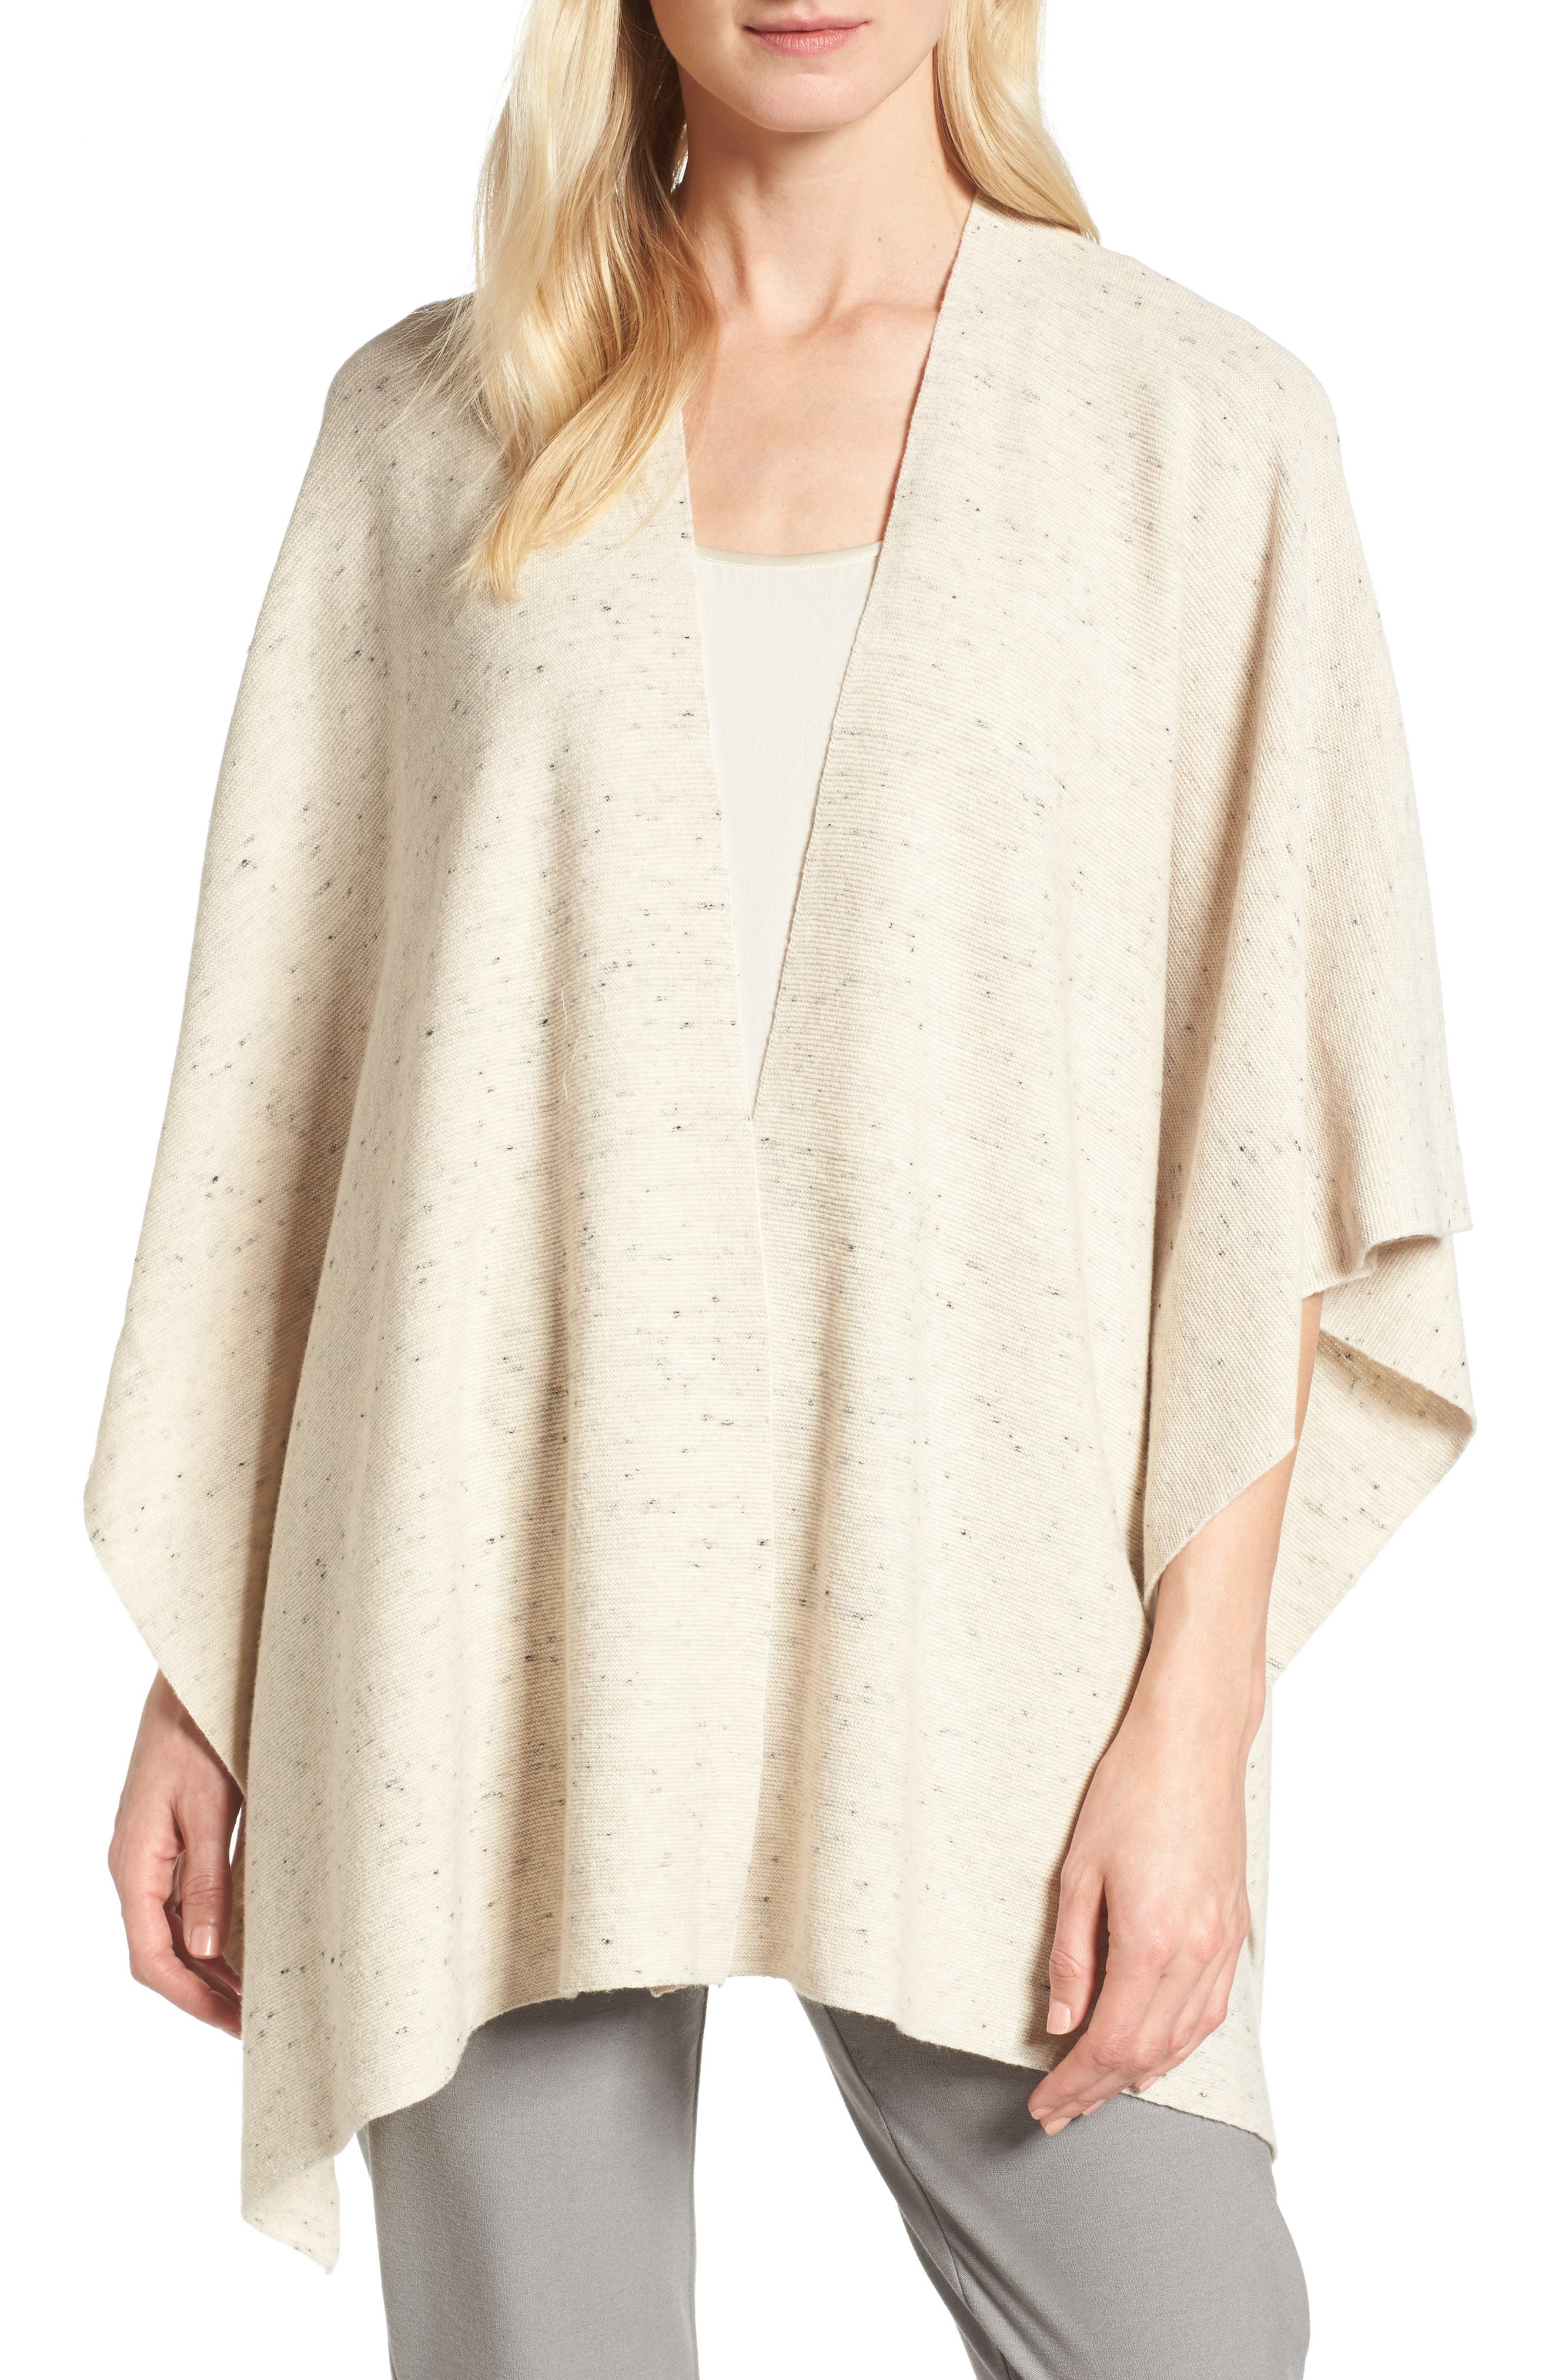 Eileen Fisher Organic Cotton Blend Poncho Cardigan